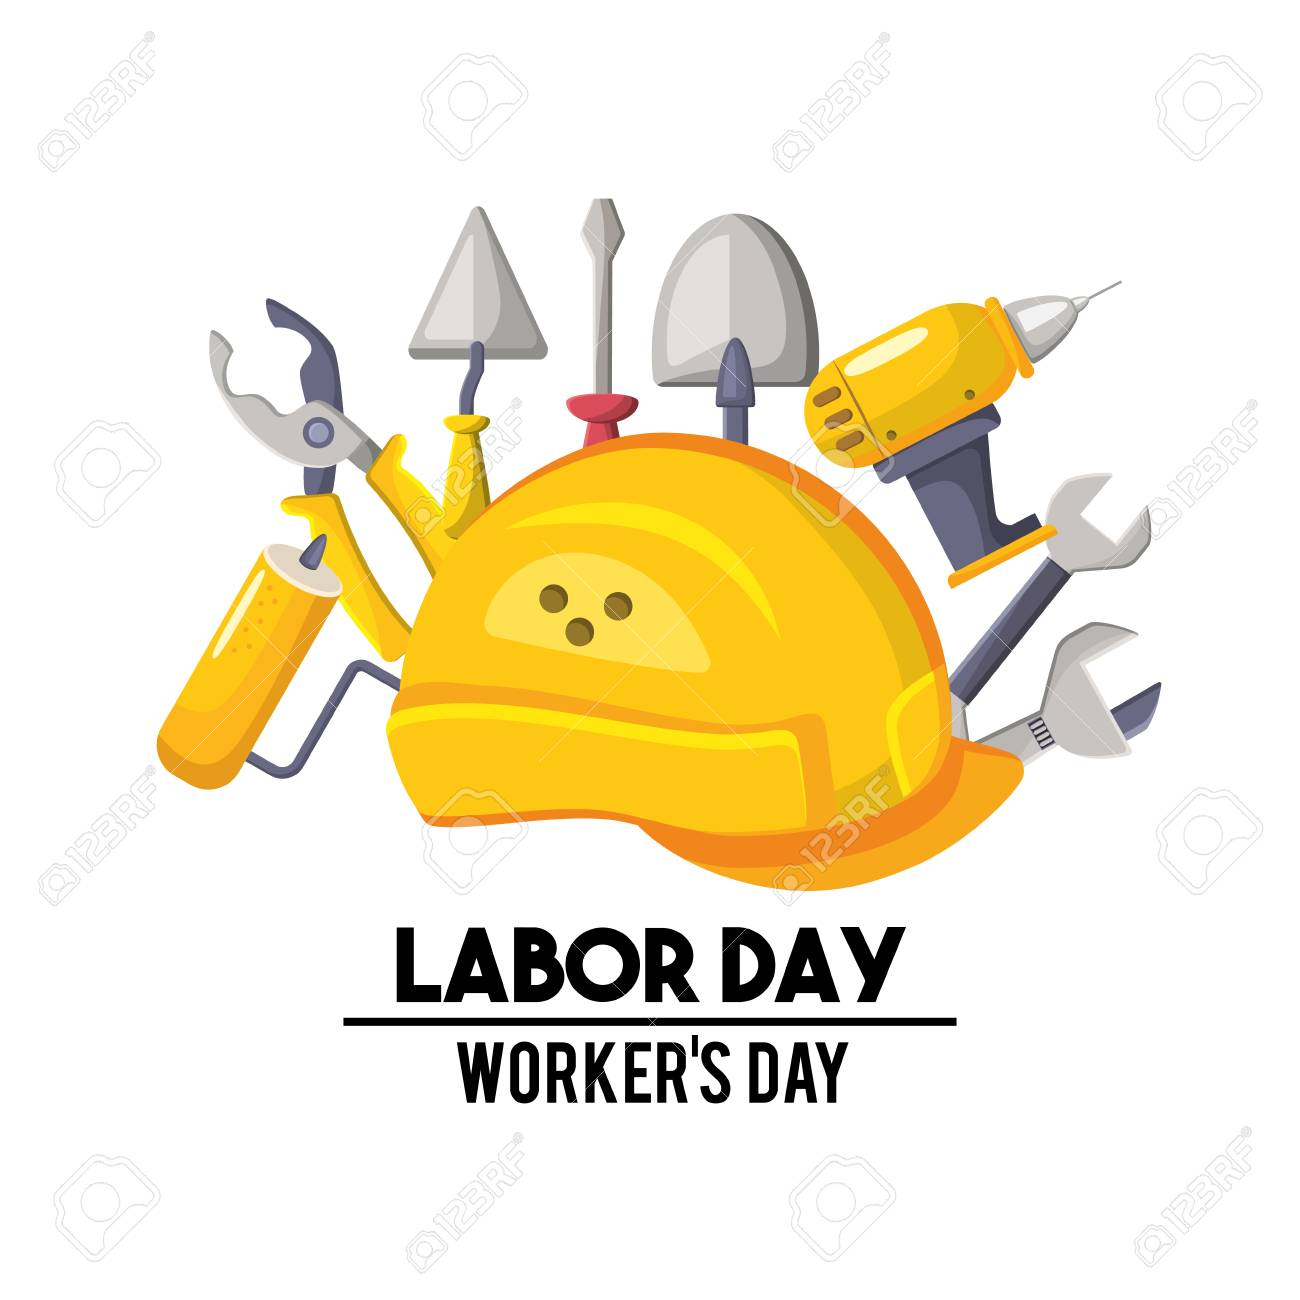 Labor day national celebration symbol vector illustration royalty labor day national celebration symbol vector illustration stock vector 84063872 buycottarizona Choice Image